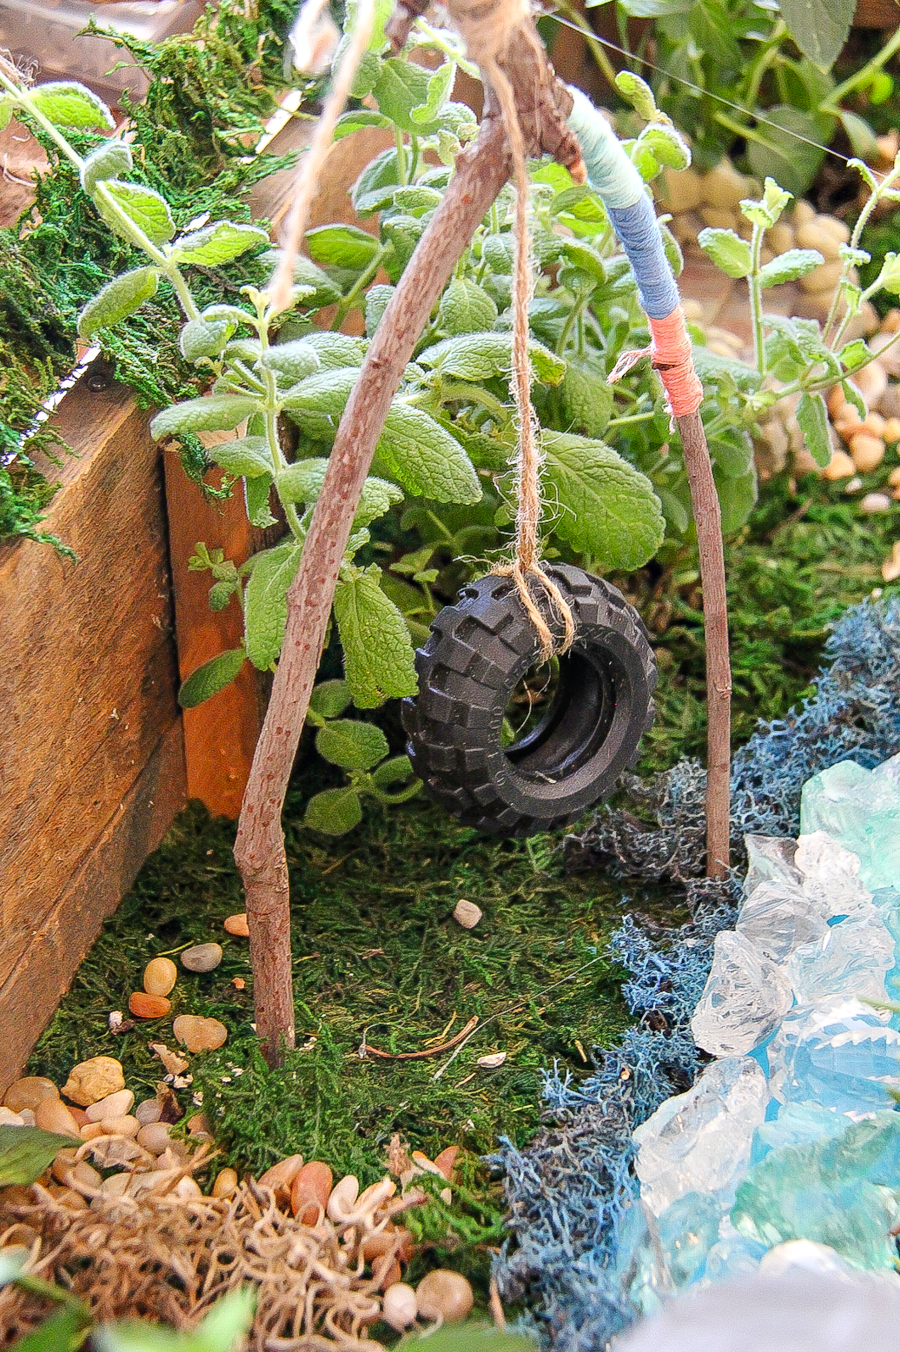 A tire swing for a fairy garden made out of a toy tire from a car and a stick wrapped with string.